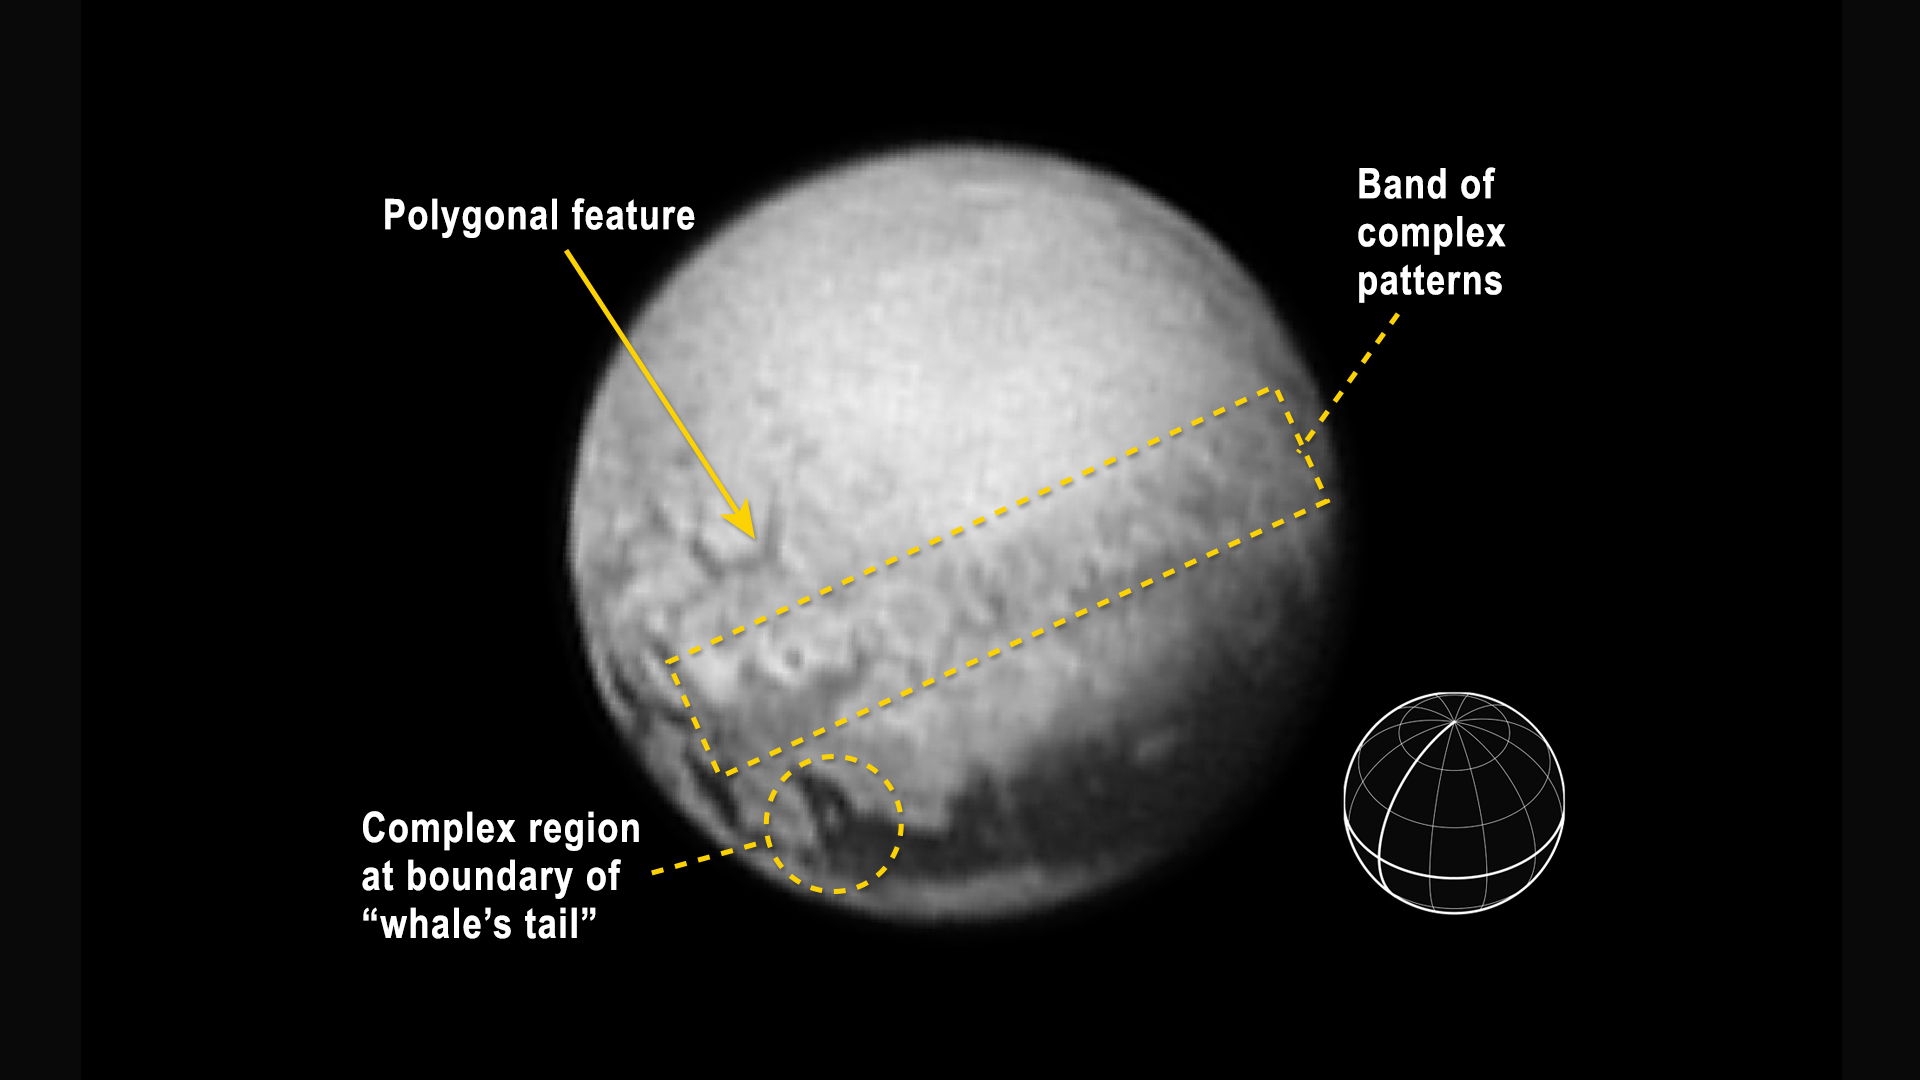 Signs of Geology on Pluto (Annotated)